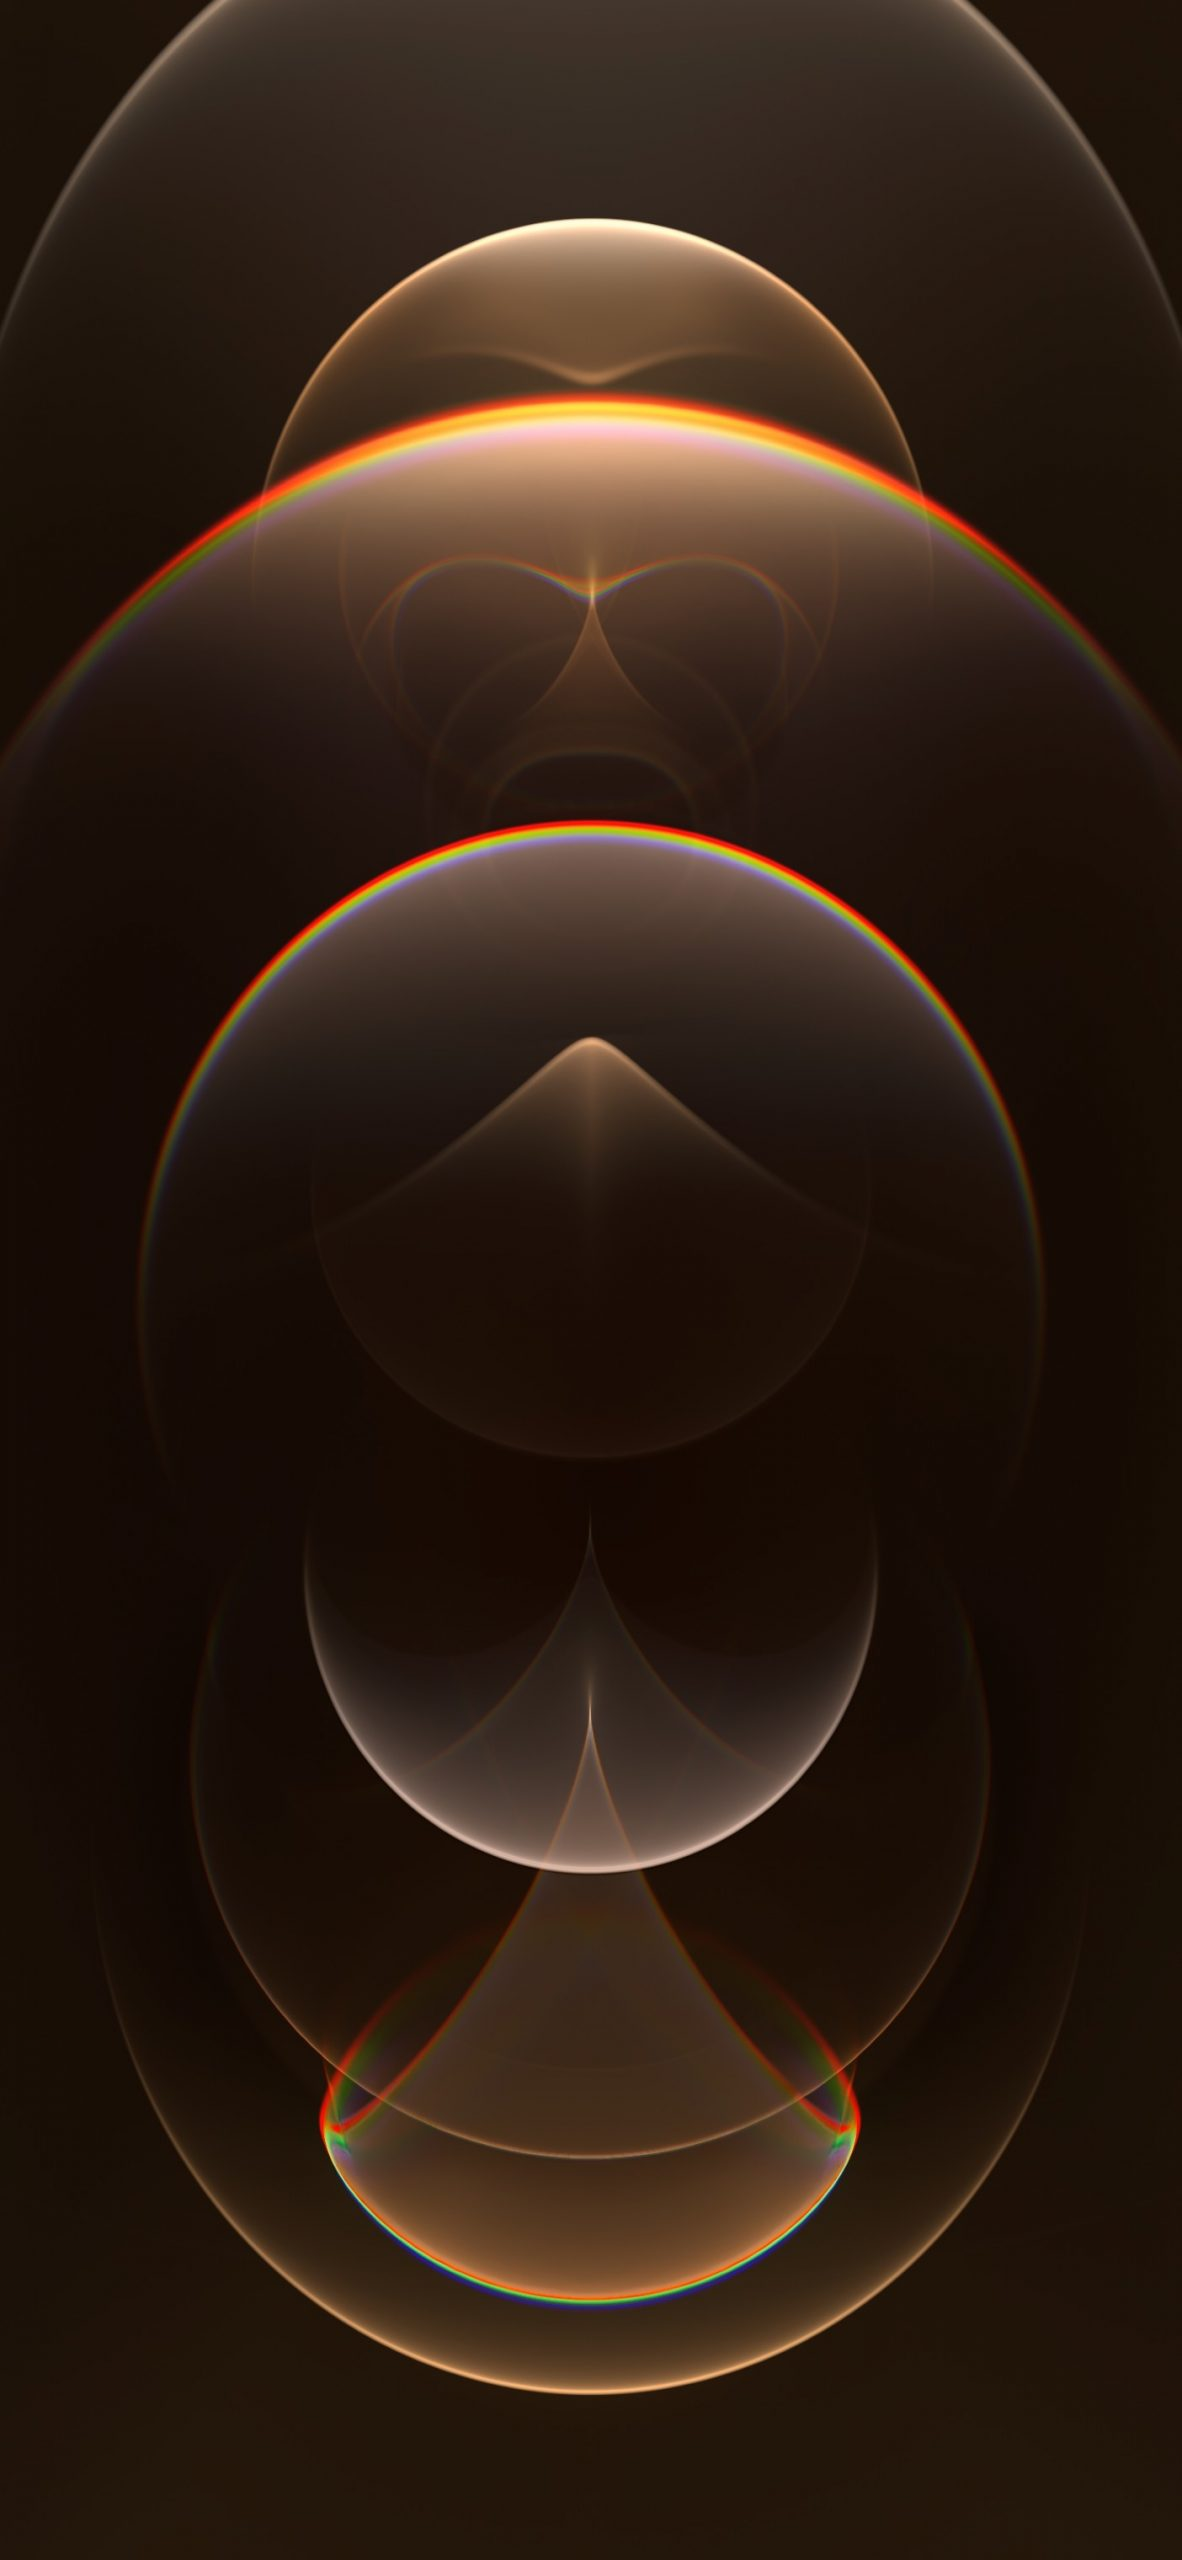 apple iphone 12 pro wallpapers 3 scaled